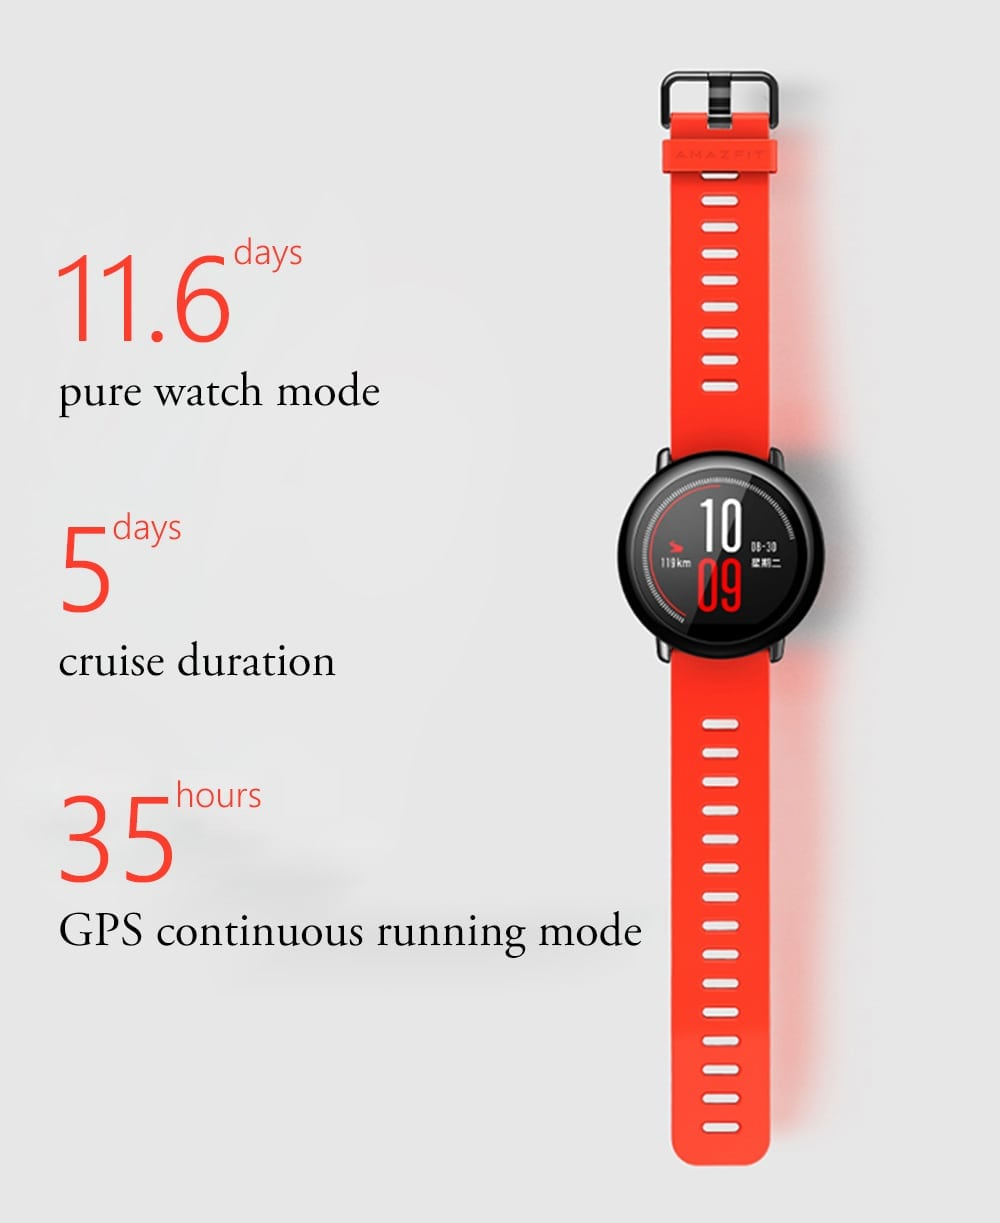 xiaomi amazfit smartwatch battery life